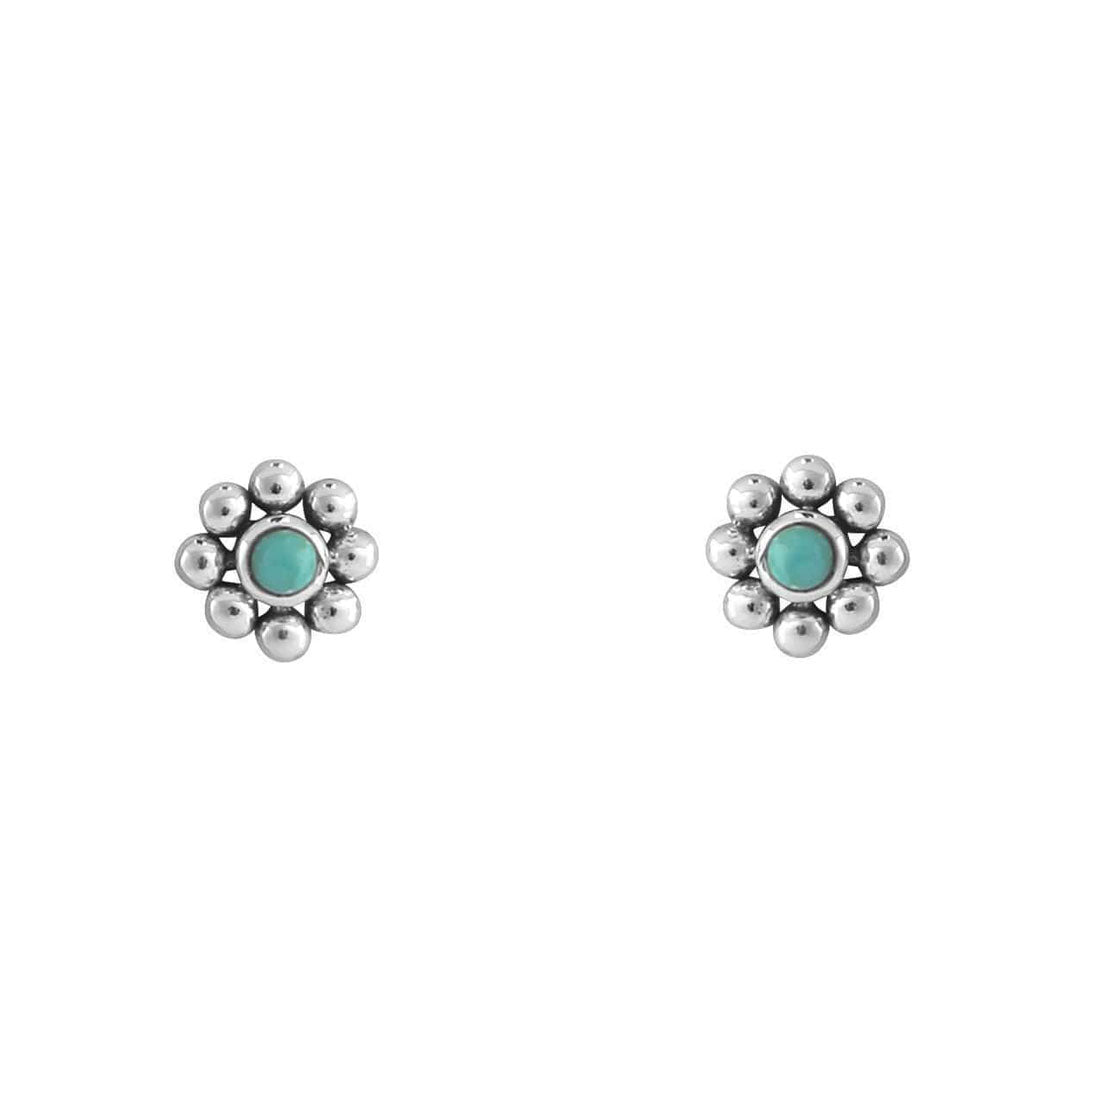 Midsummer Star Earrings Enchanted Turquoise Flower Studs